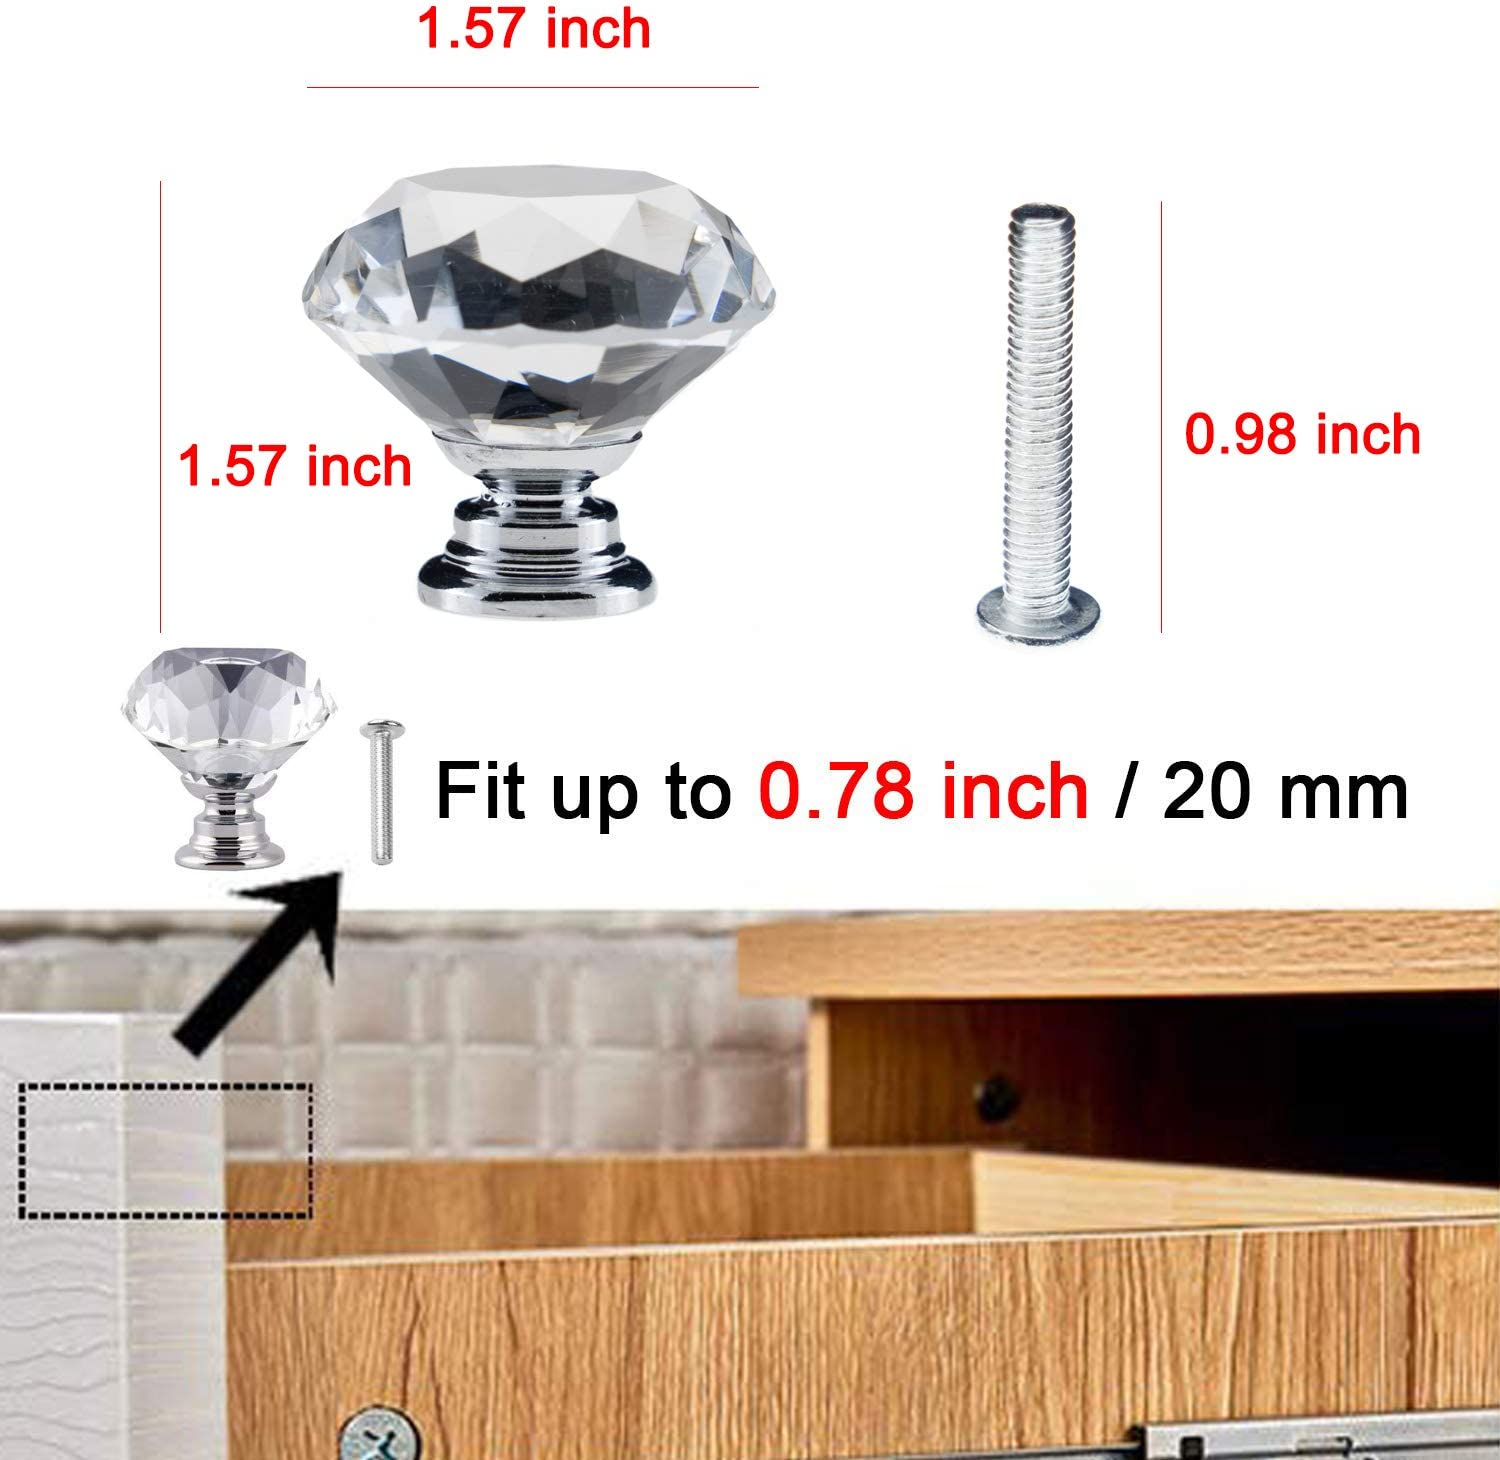 40 mm, 12 Pack, Silver YourGift 12 Pack Drawer Knobs Diamond Shaped Crystal Glass 40mm Cabinet Knobs Pull Handles